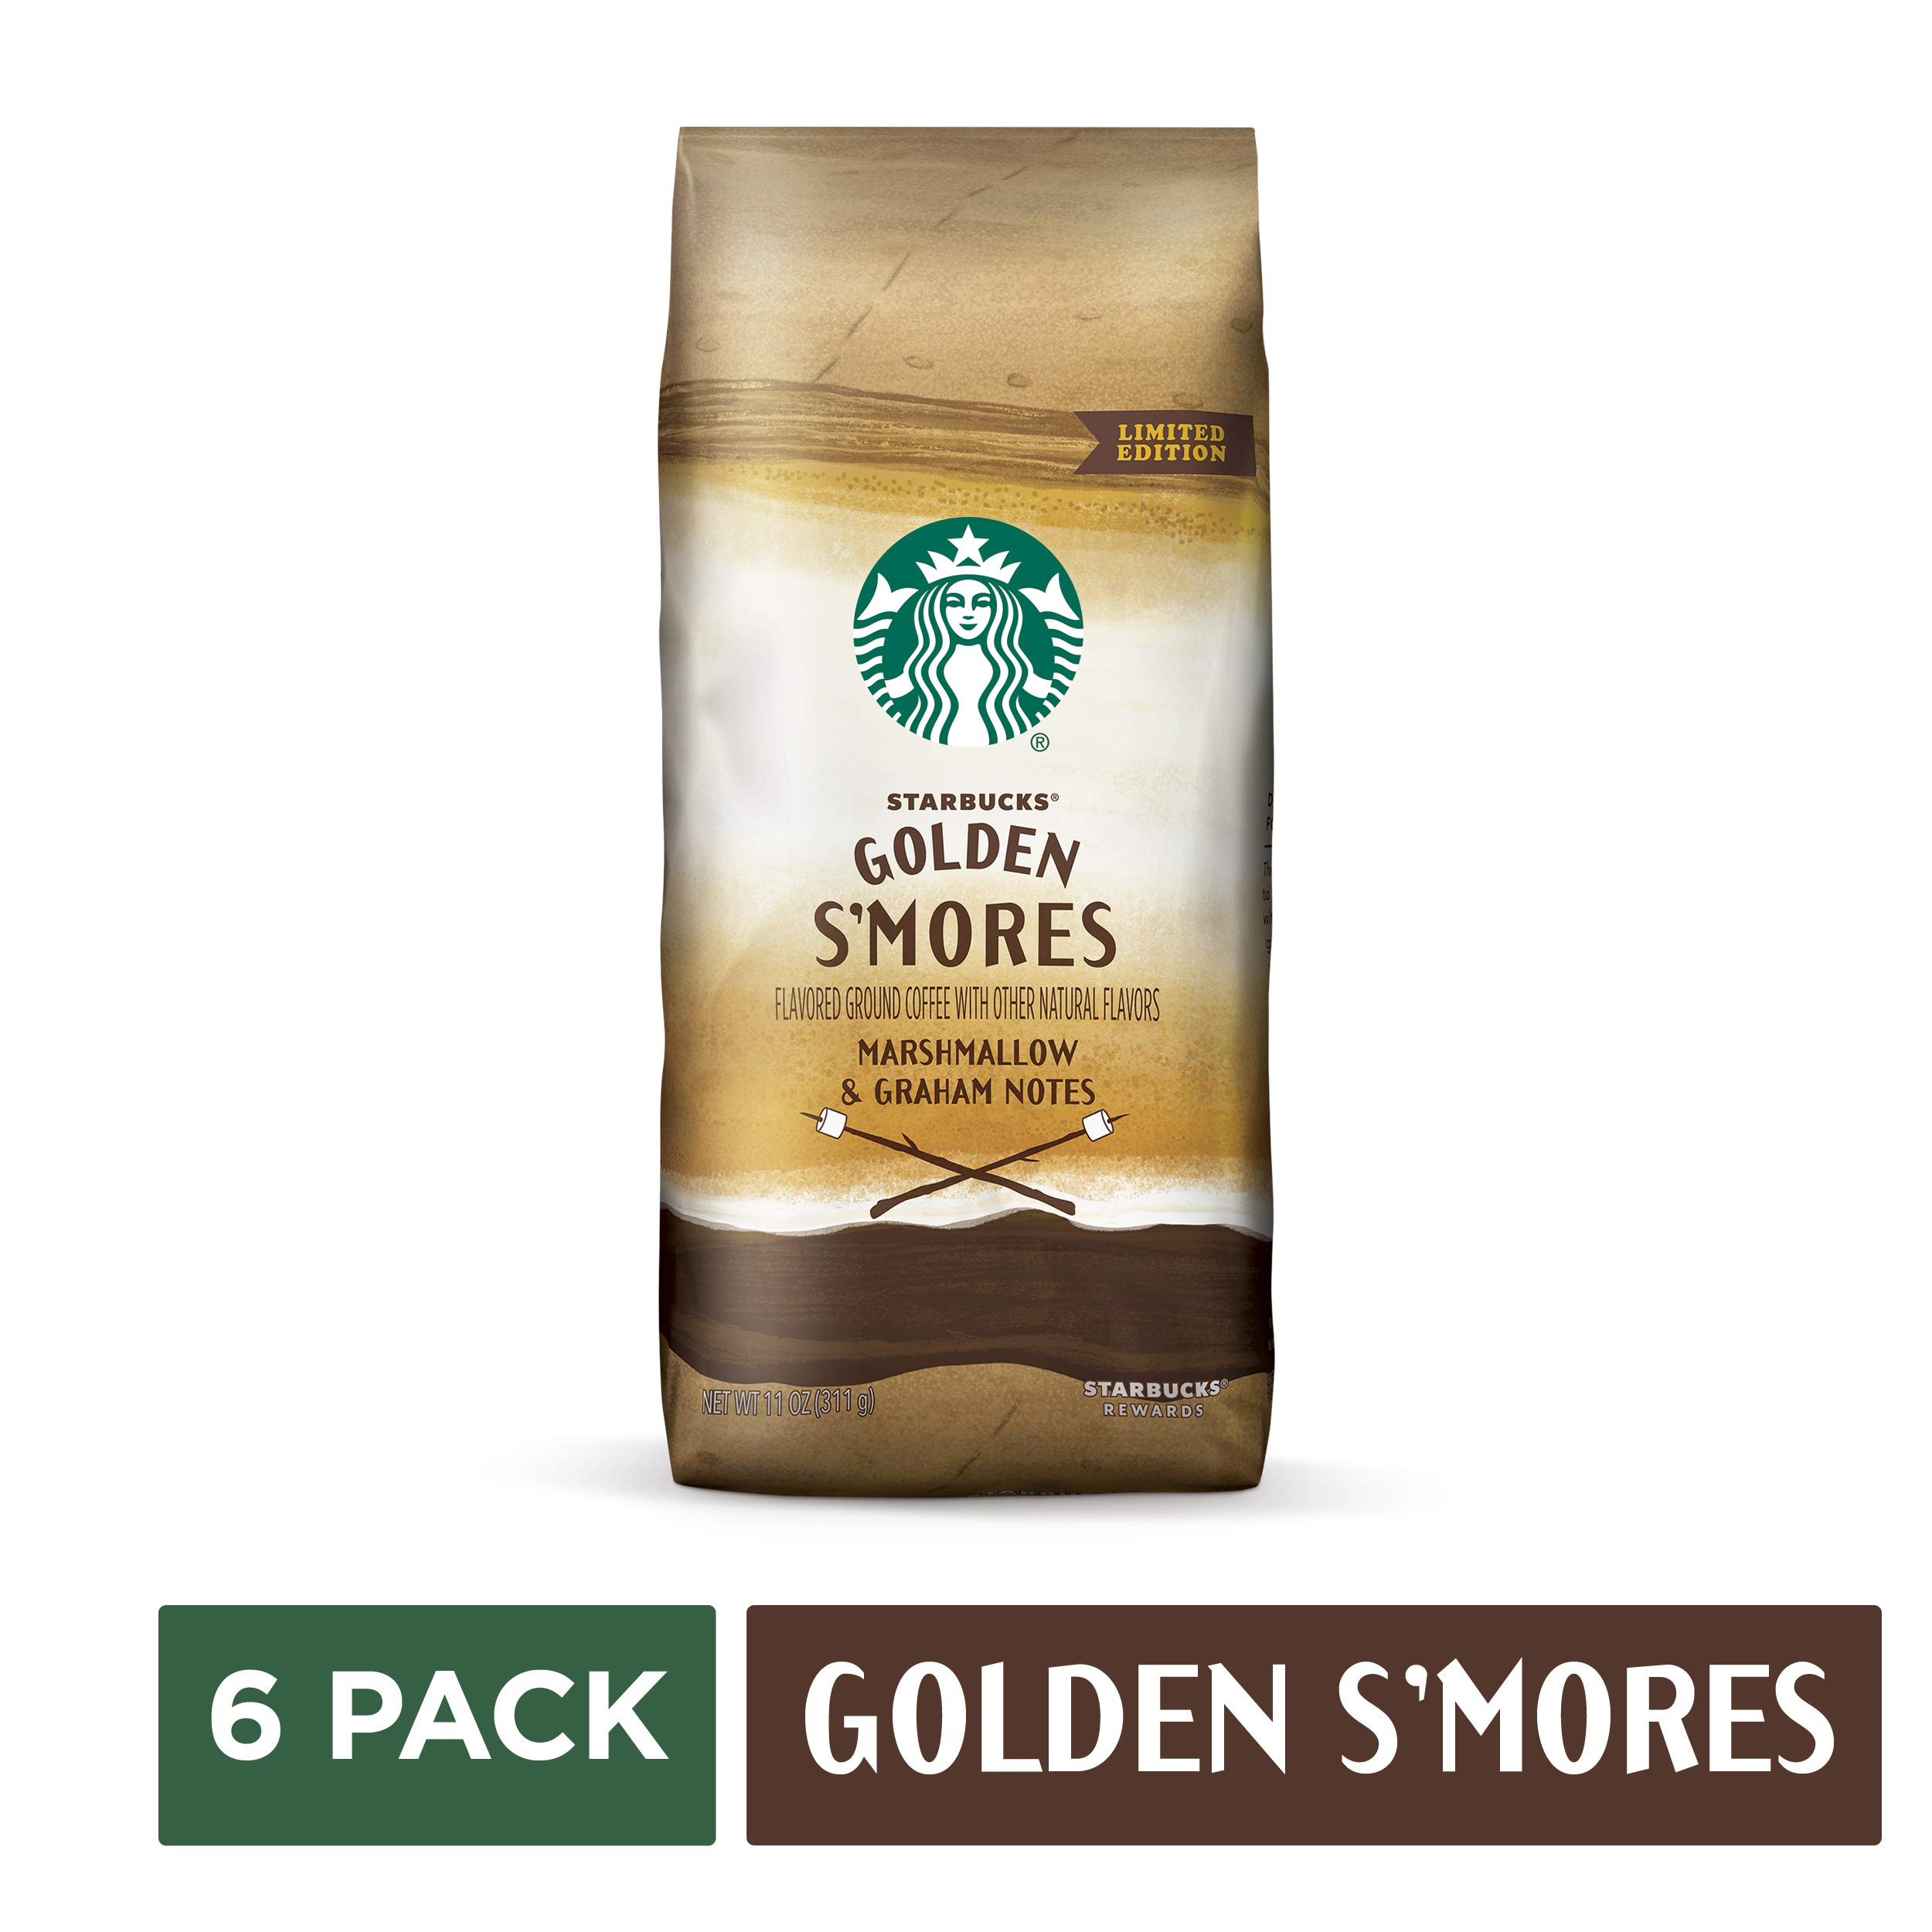 Starbucks Golden S'mores Flavored Blonde Roast Ground Coffee, six 11-oz. bags (total net weight 4.1 LB [1.8 kg])